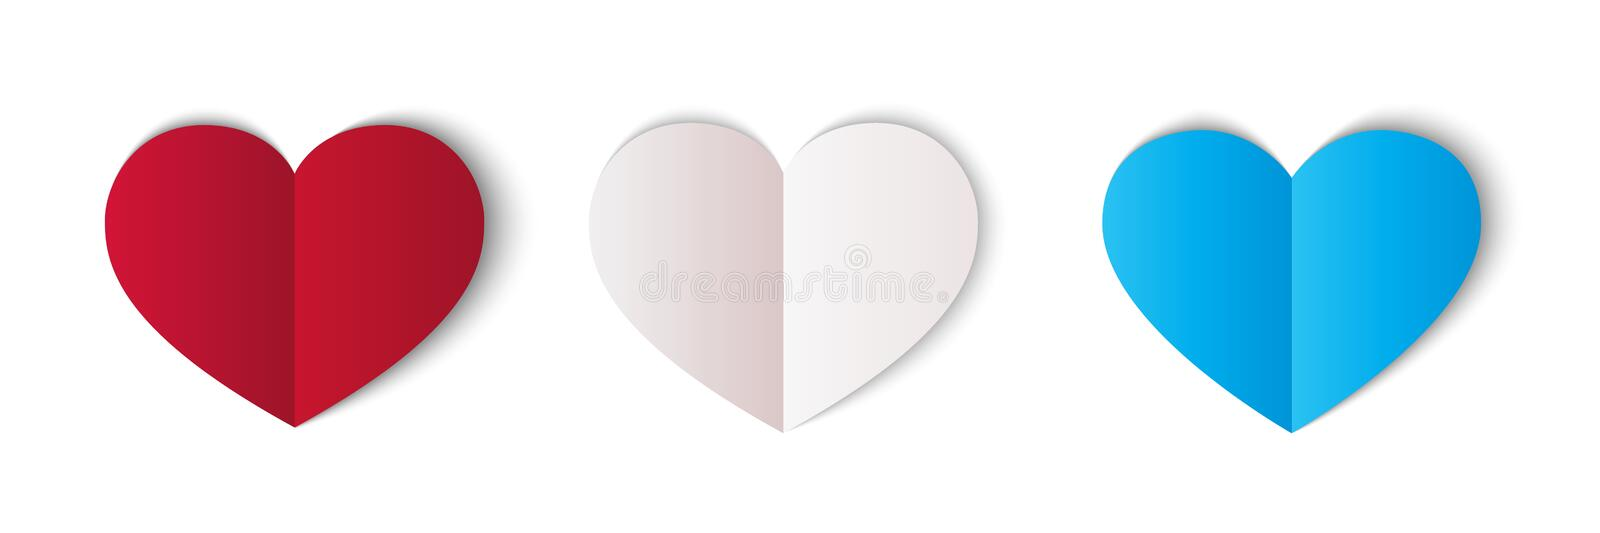 Red, White and Blue paper hearts isolated on white background. Heart icon. Symbol of love. Vector design element for. Valentine s day. Vector illustration vector illustration